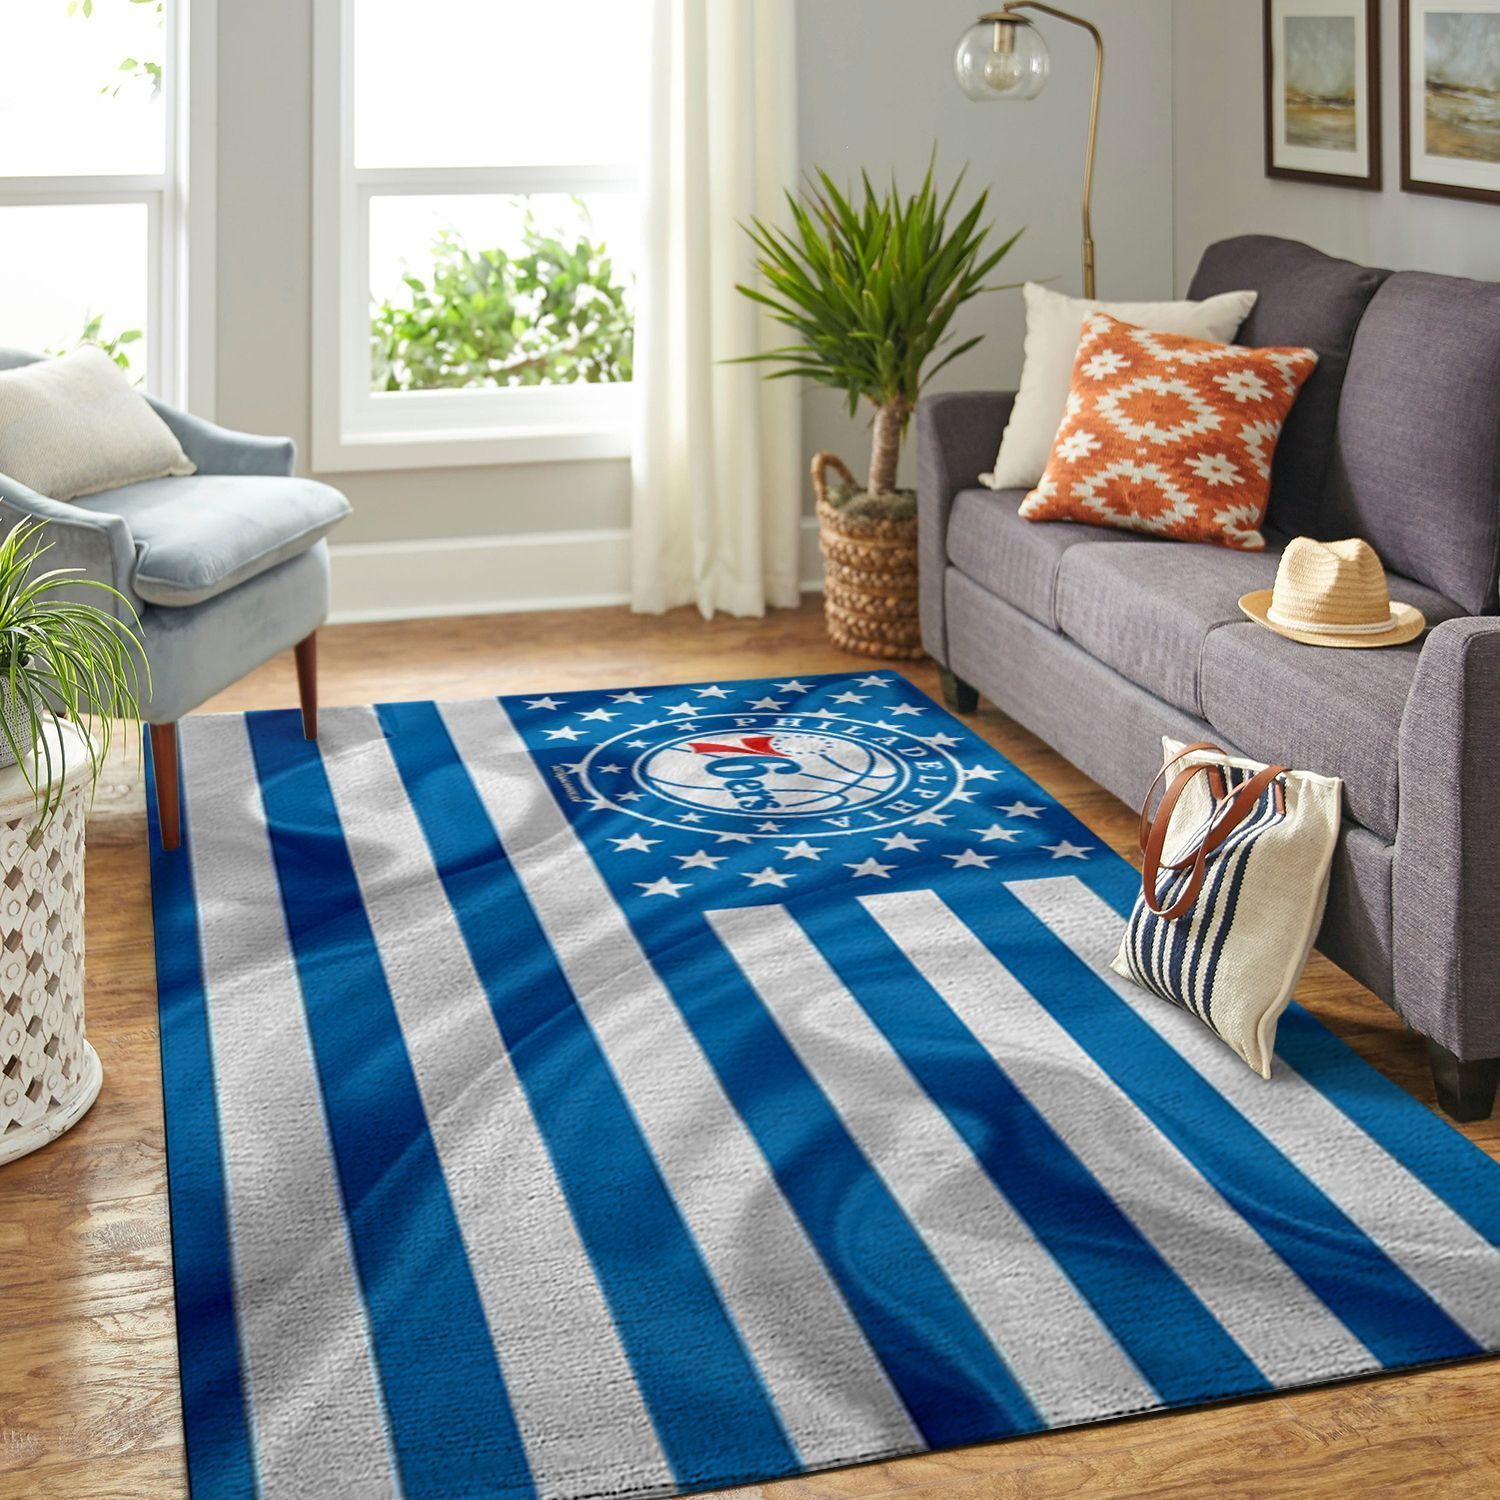 Amazon Philadelphia 76ers Living Room Area No4486 Rug